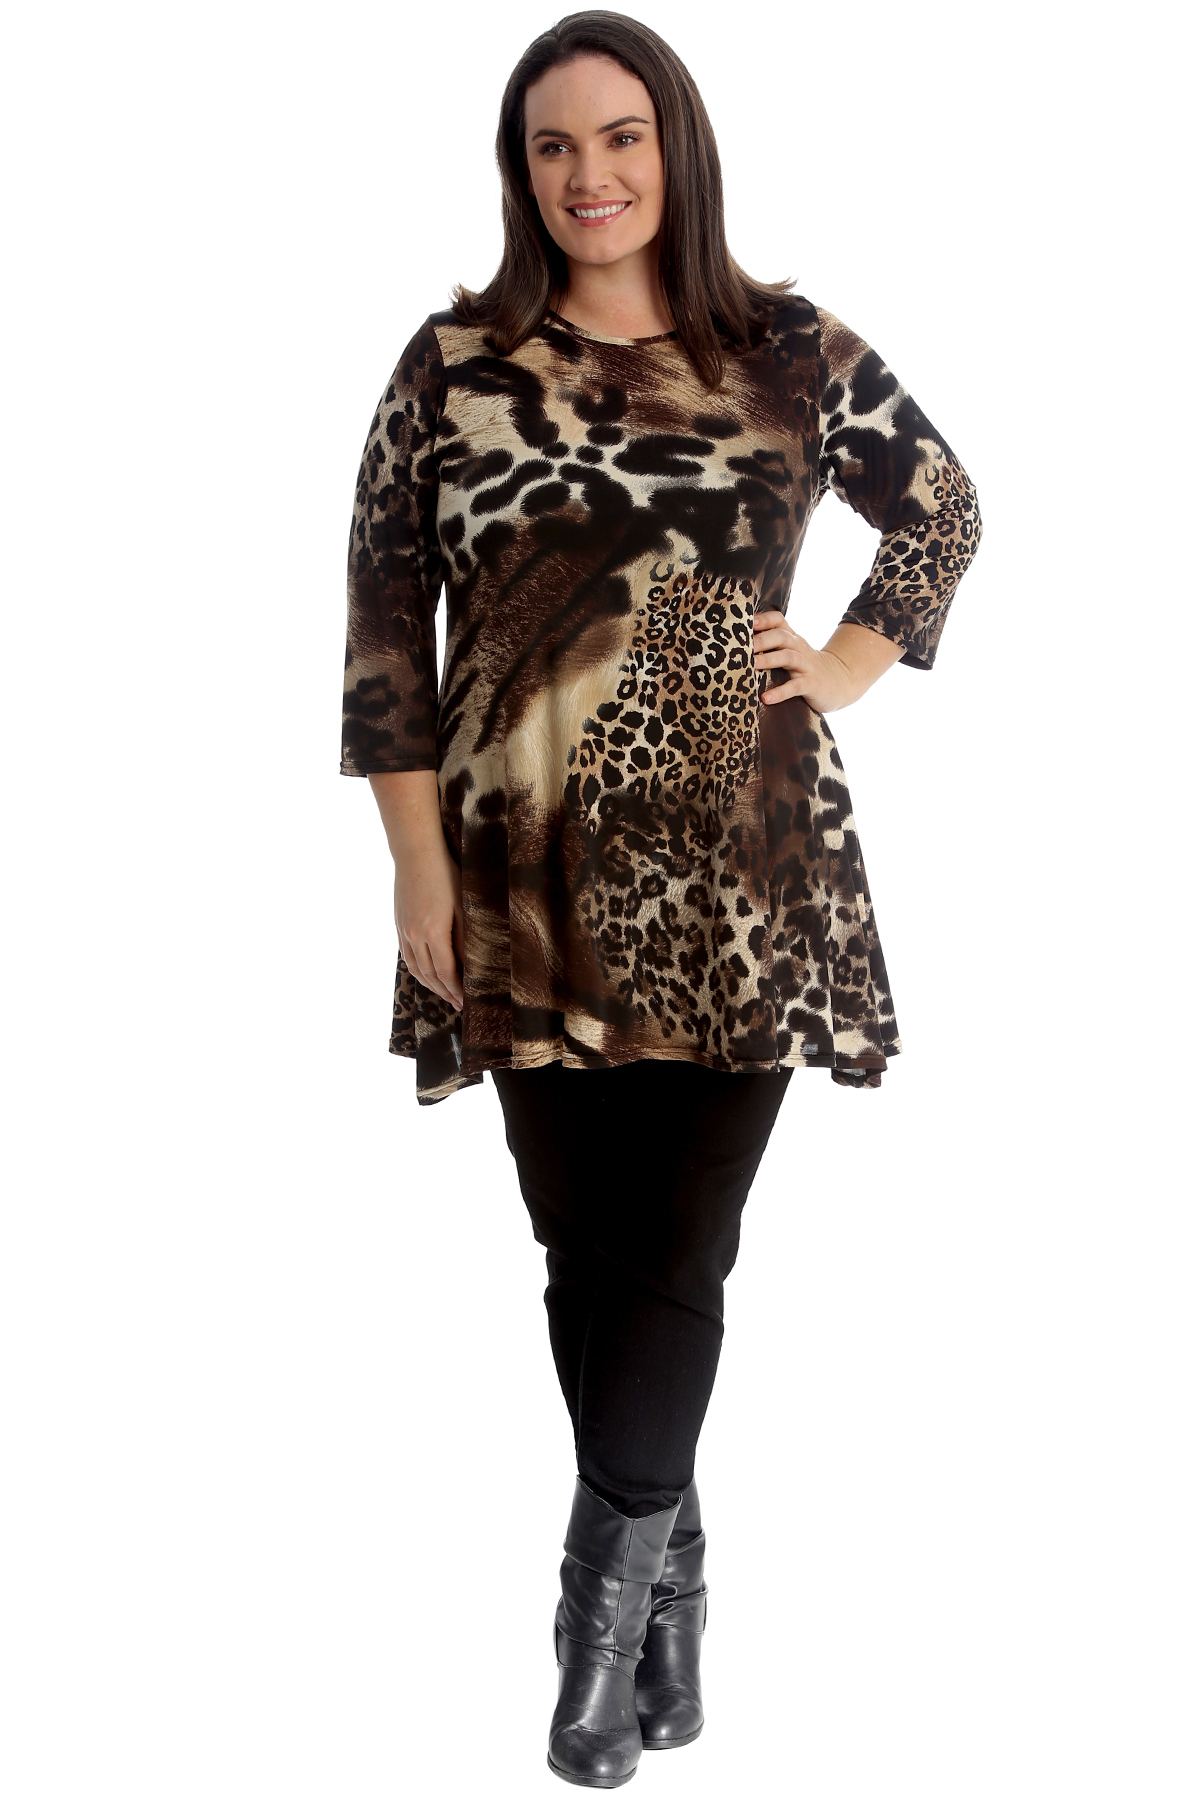 New Womens Plus Size Top Ladies Tiger Animal Print Swing Dress Tunic Abstract